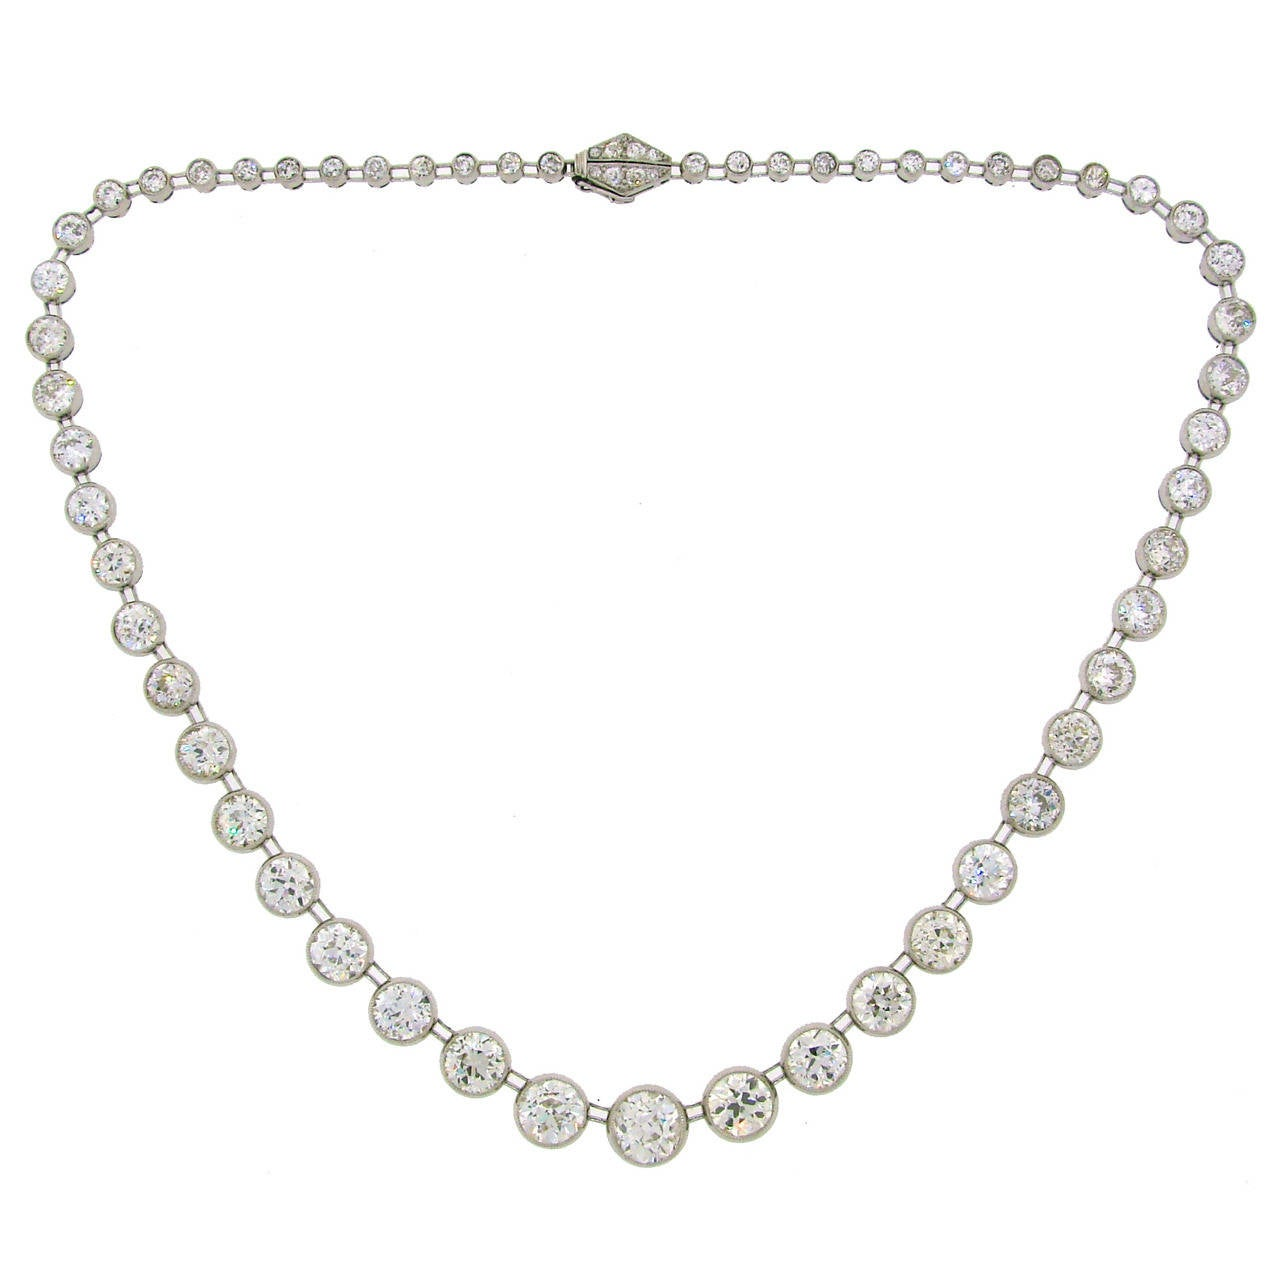 Art Deco 1920s 25 carats Old European Cut Diamond Platinum Riviere Necklace 1